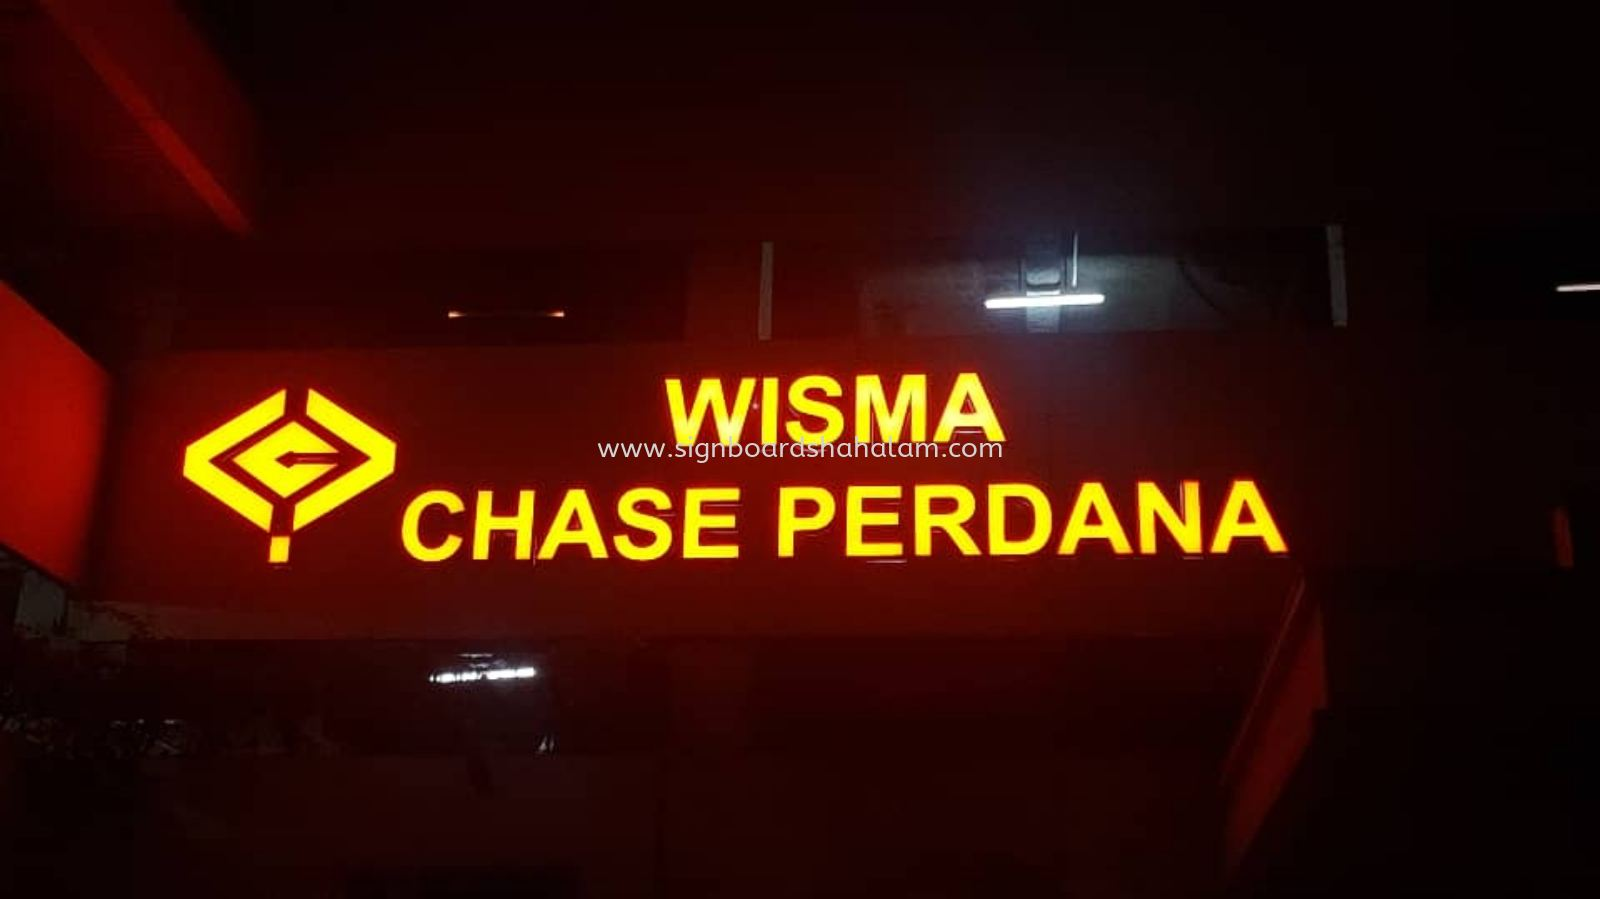 Wisma Chase Perdana KL - 3D LED Conceal Box Up Signboard